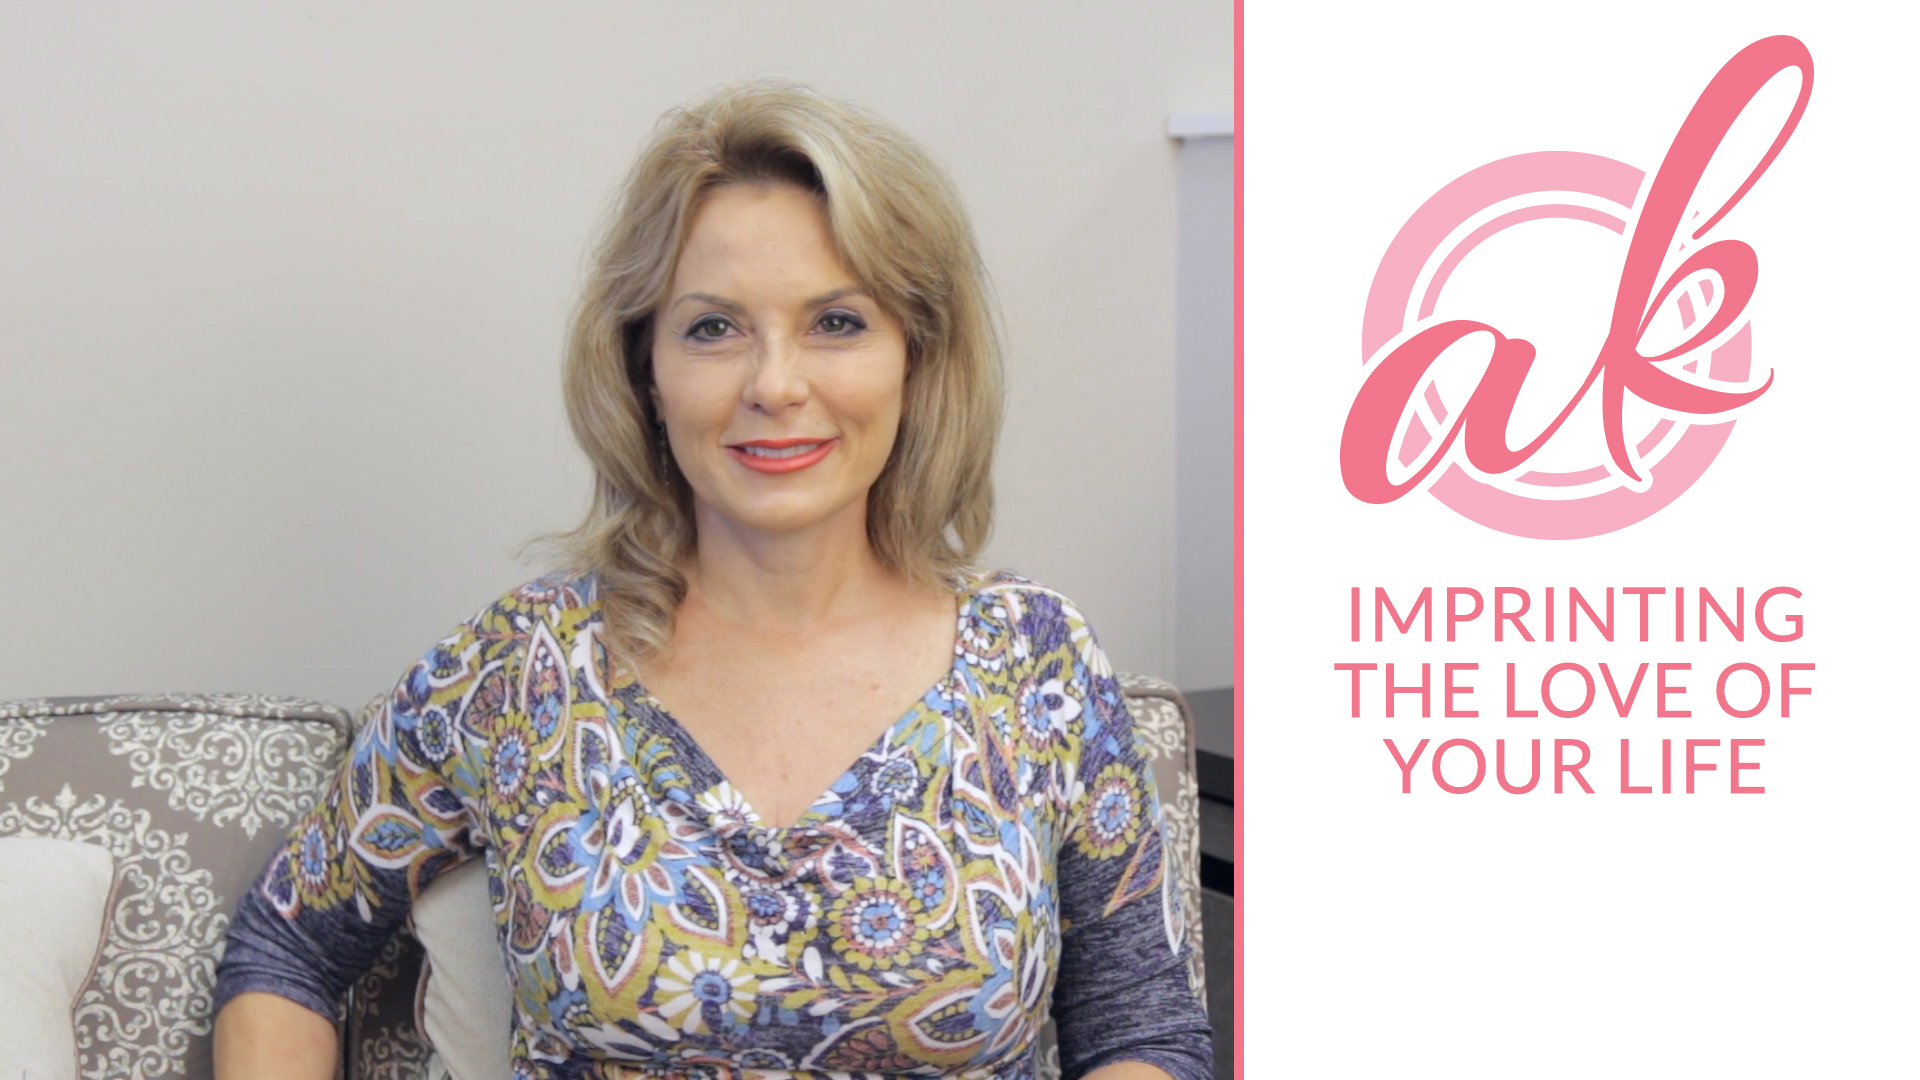 Episode 5: Imprinting the Love of Your Life